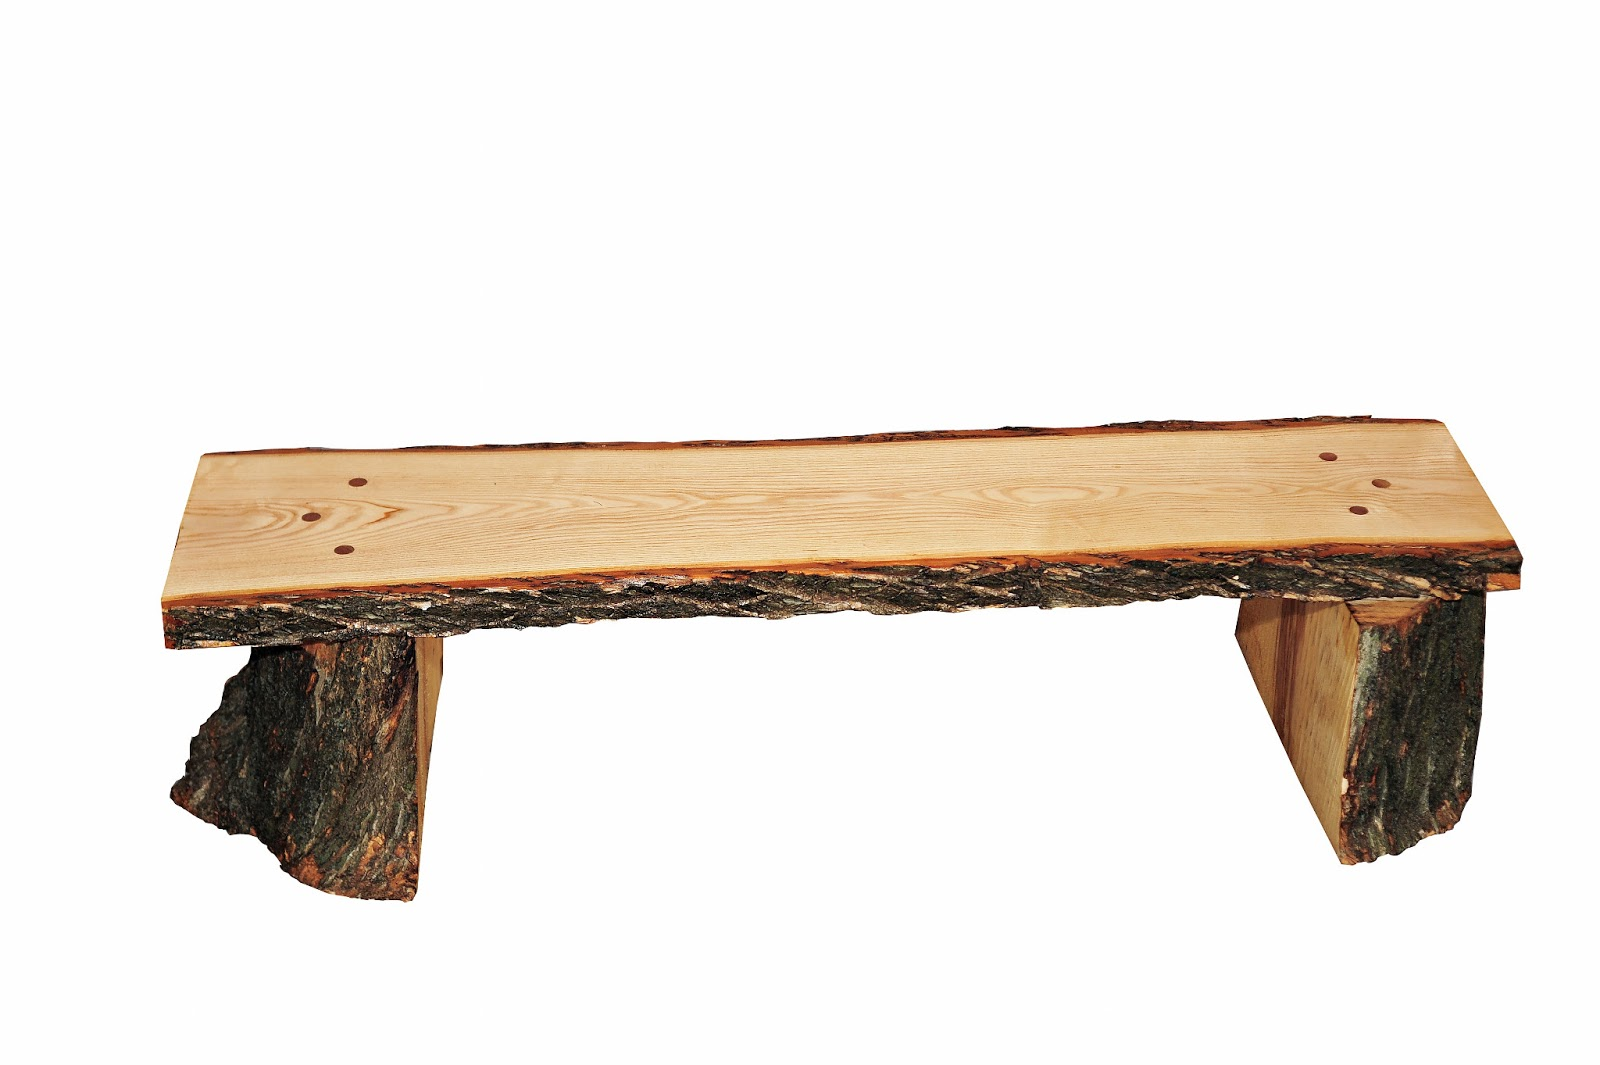 Wood Furniture Available from Green Man - Green Man Tree ...